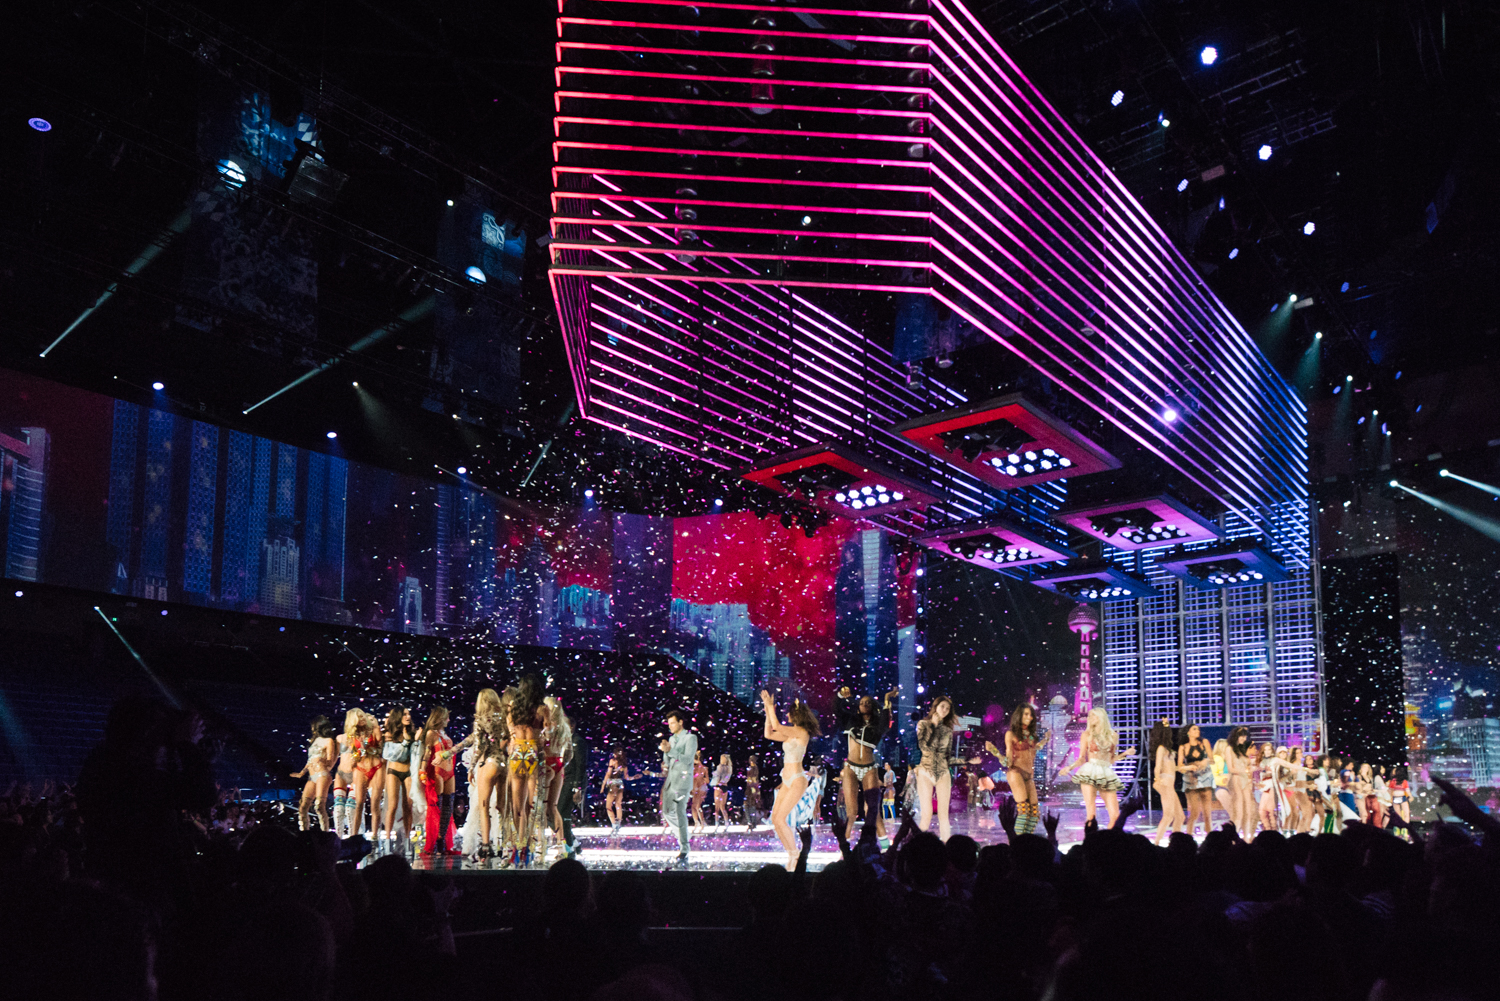 VICTORIA SECRET SHOW_FASHION EVENT_SHANGHAI-03488.jpg